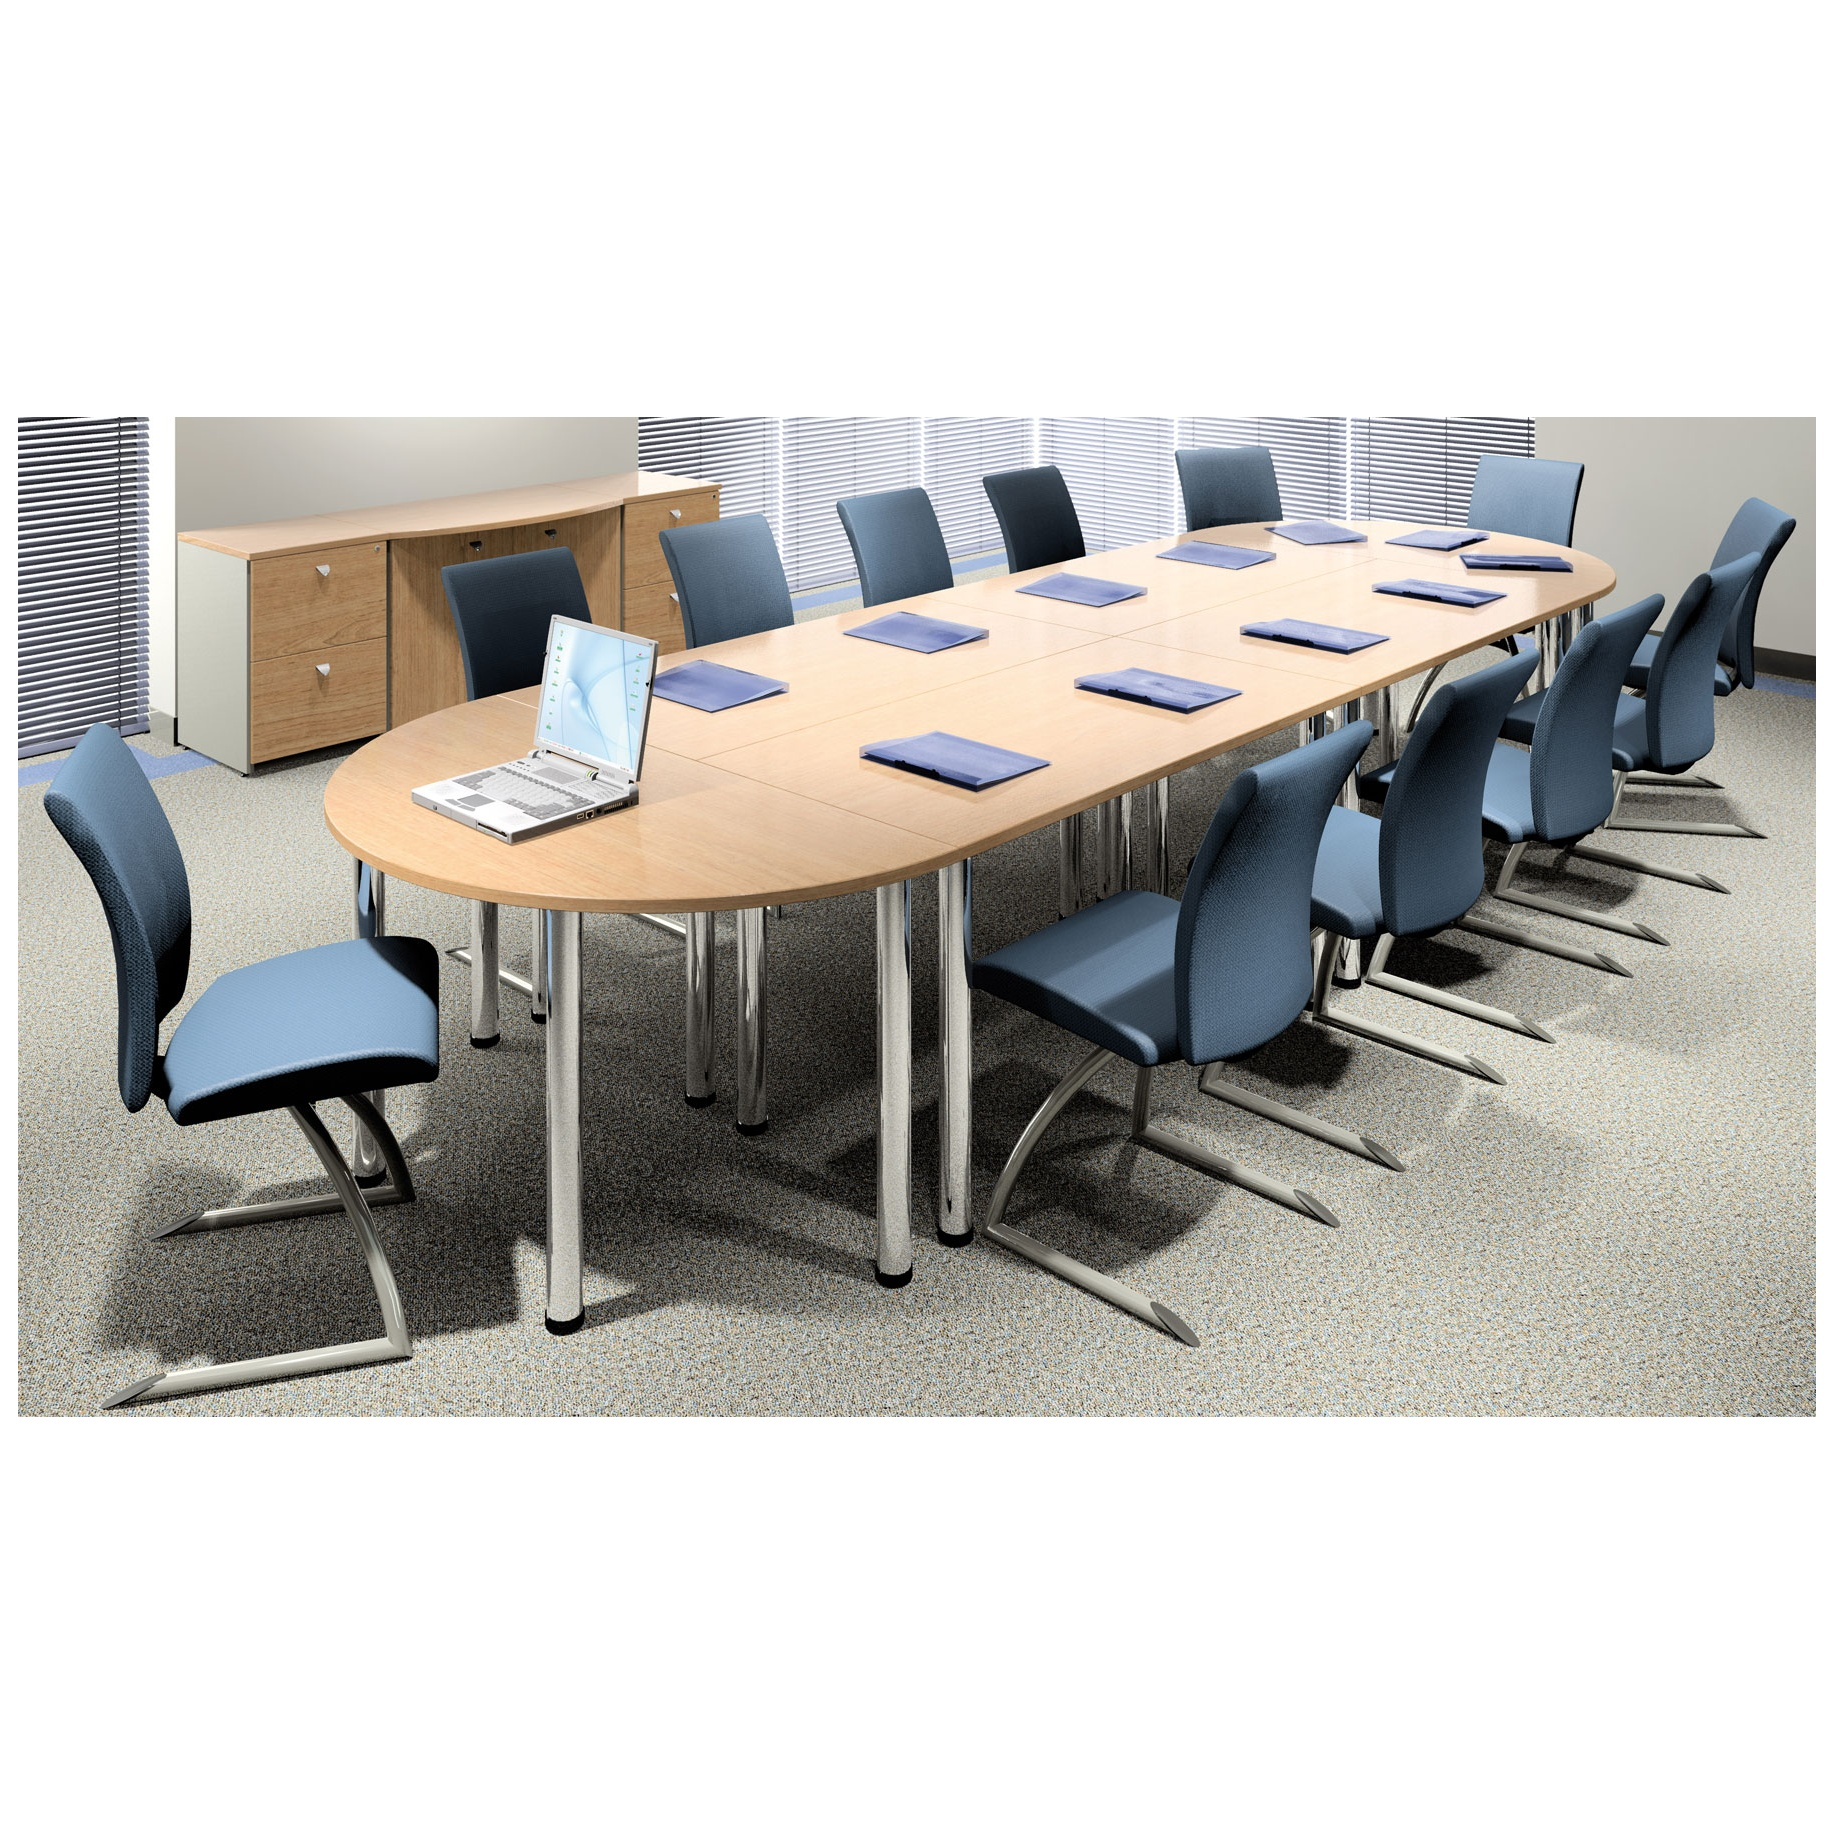 Deluxe Sectional Tables Meeting Boardroom Furniture